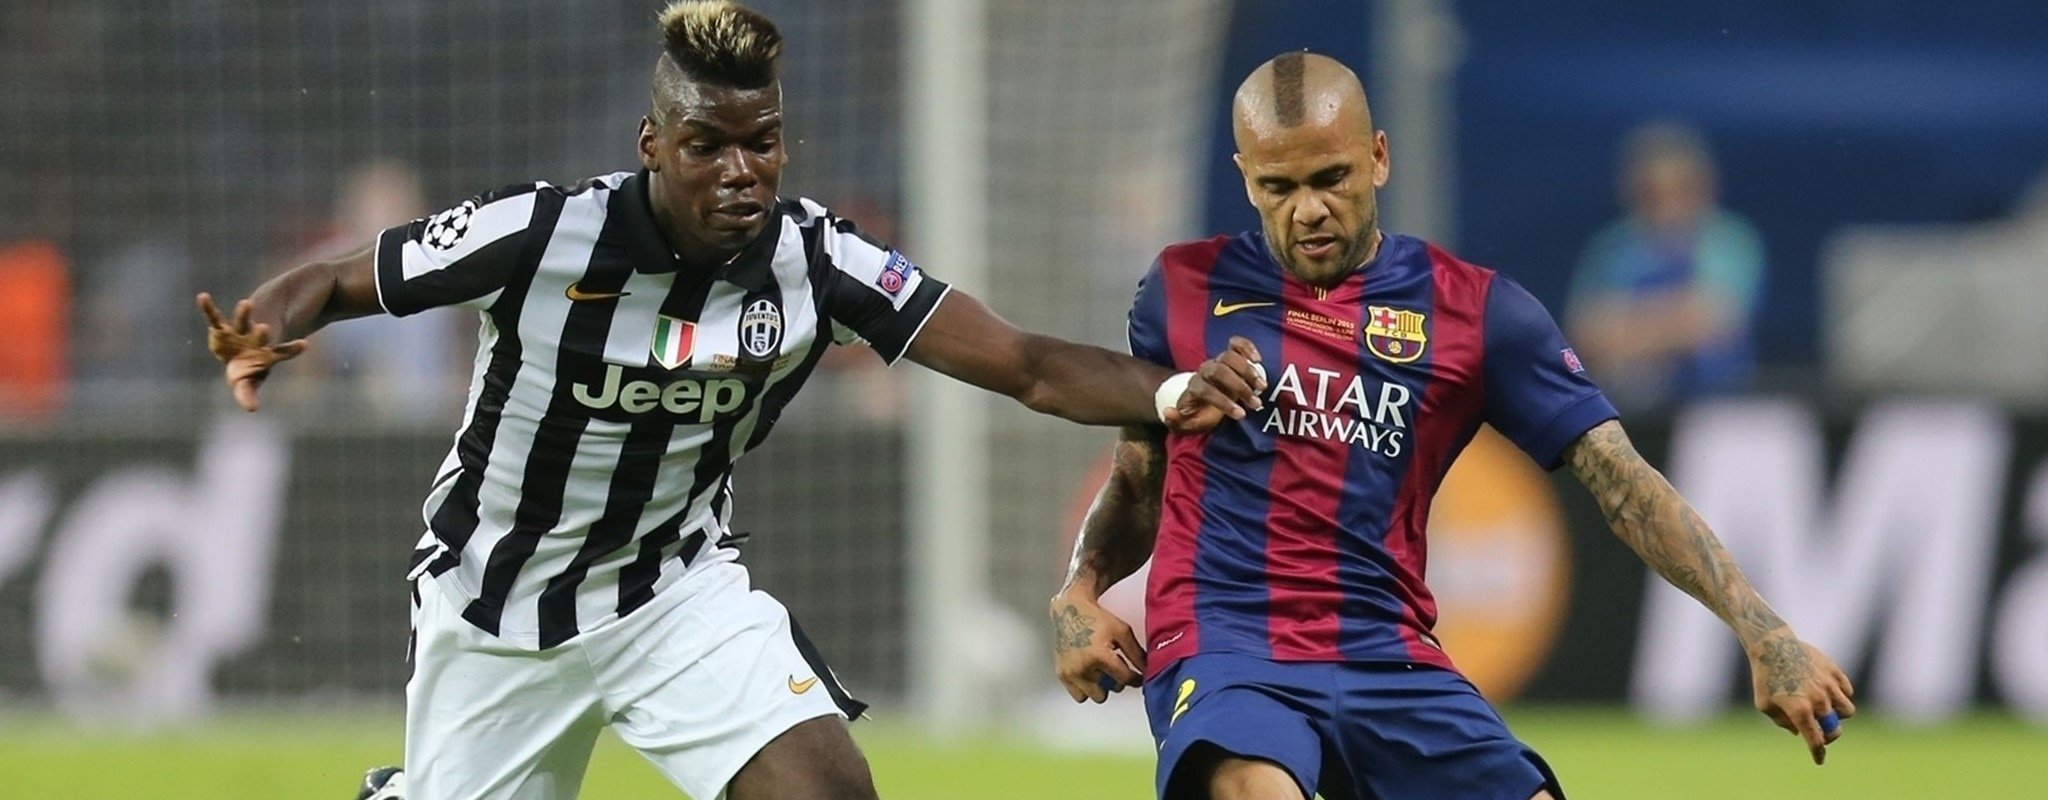 Dani Alves joins Juventus on two-year deal